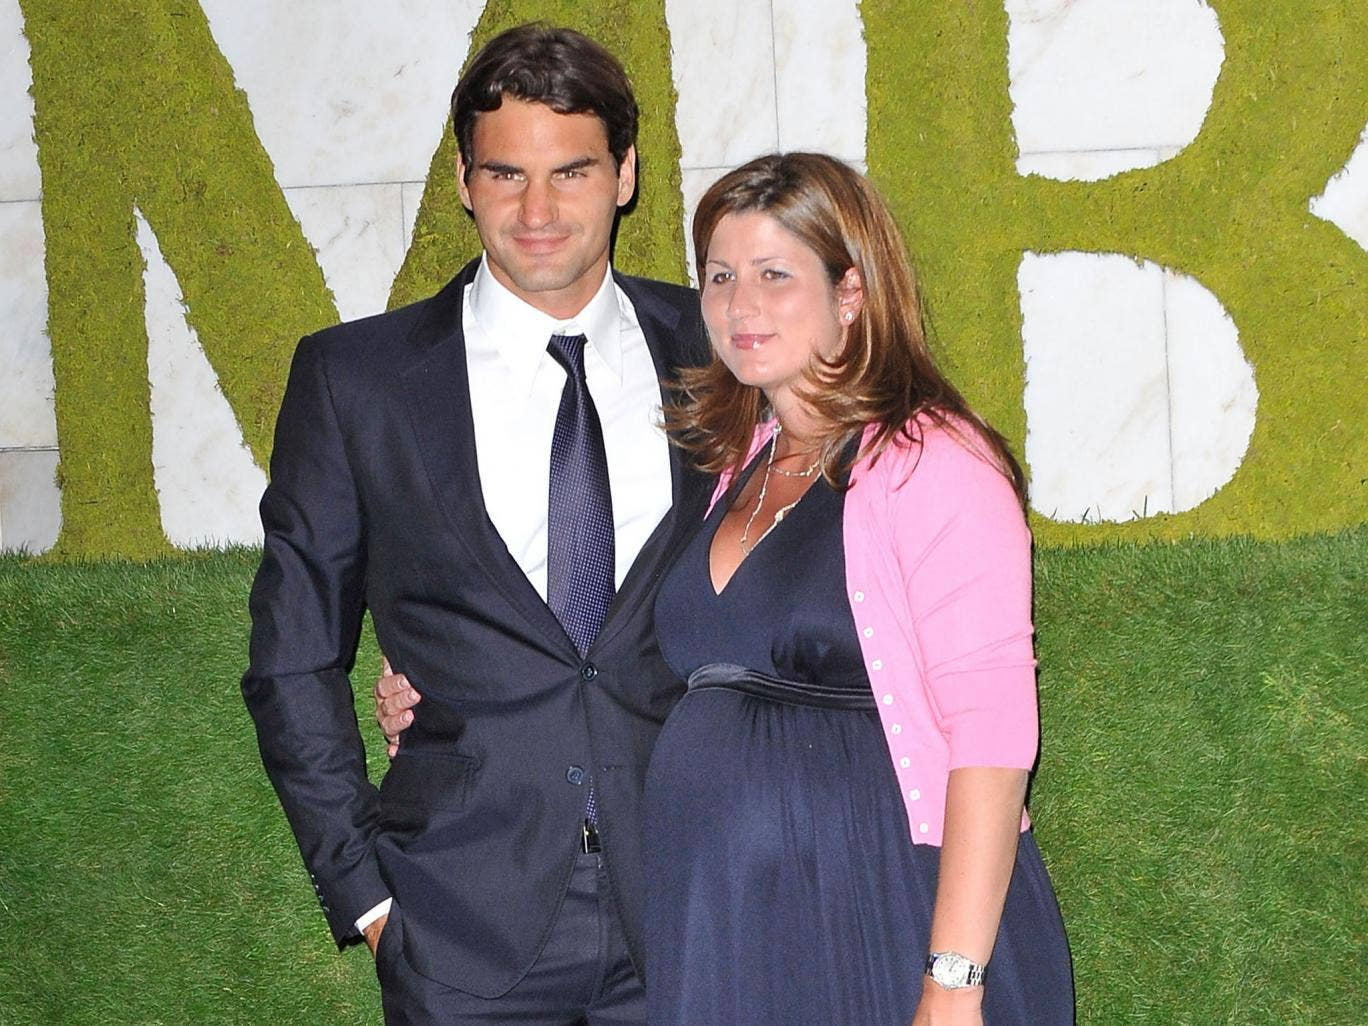 Wimbledon 2009 men's singles champion Roger Federer and his wife Mirka Federer attend the Wimbledon Winners Party at Hotel Intercontinental on July 5, 2009 in London, England.